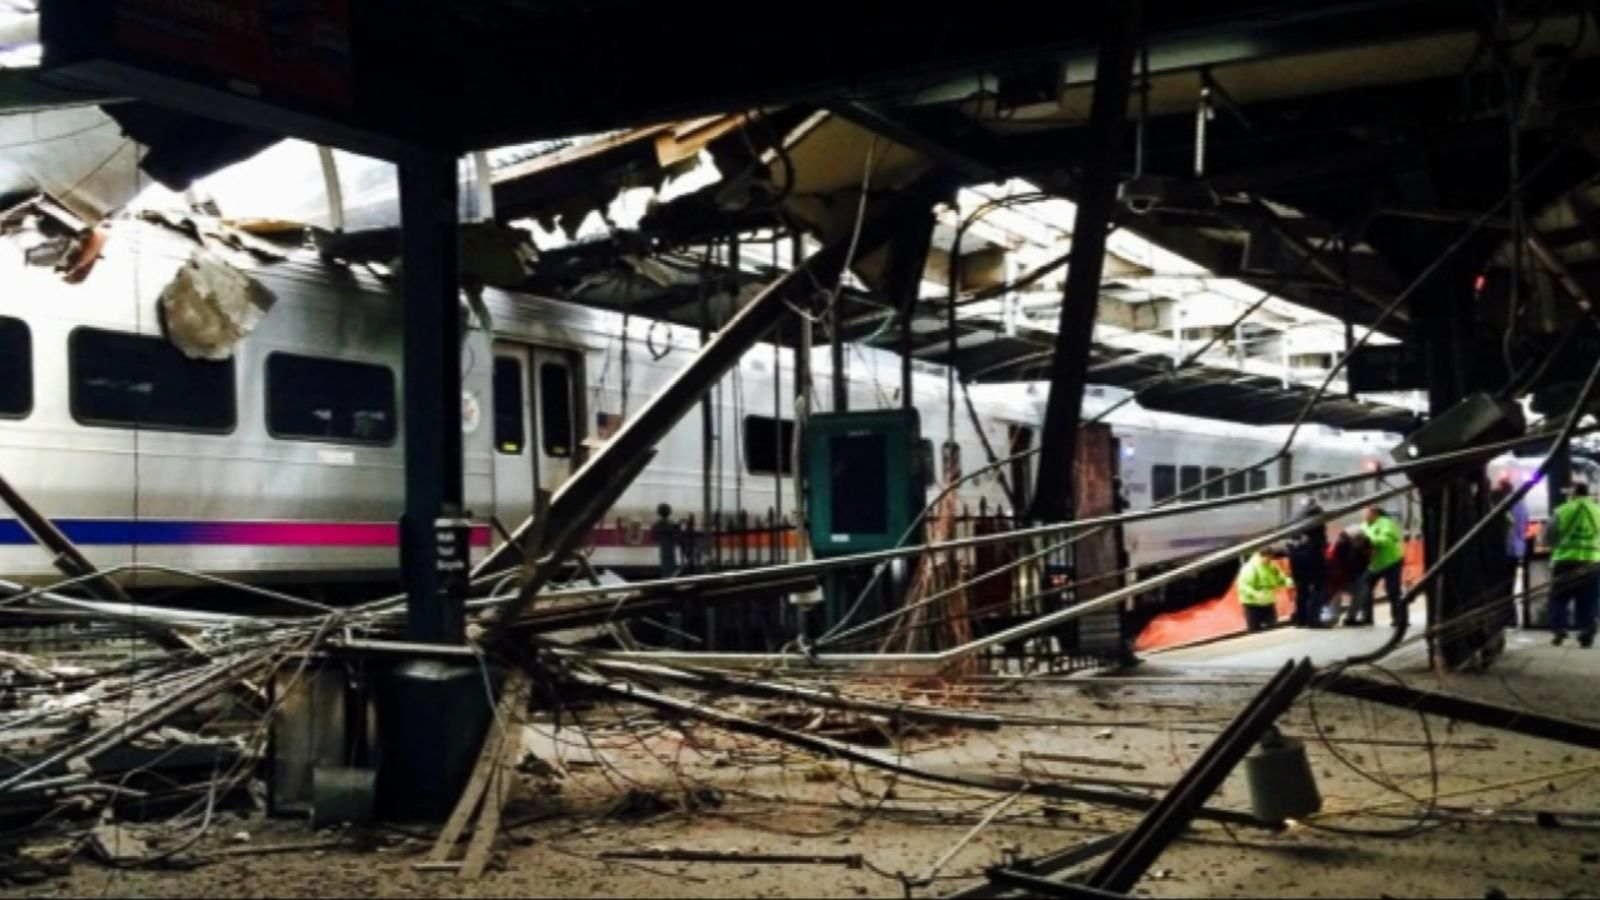 VIDEO: More Details Emerge in Hoboken Train Accident